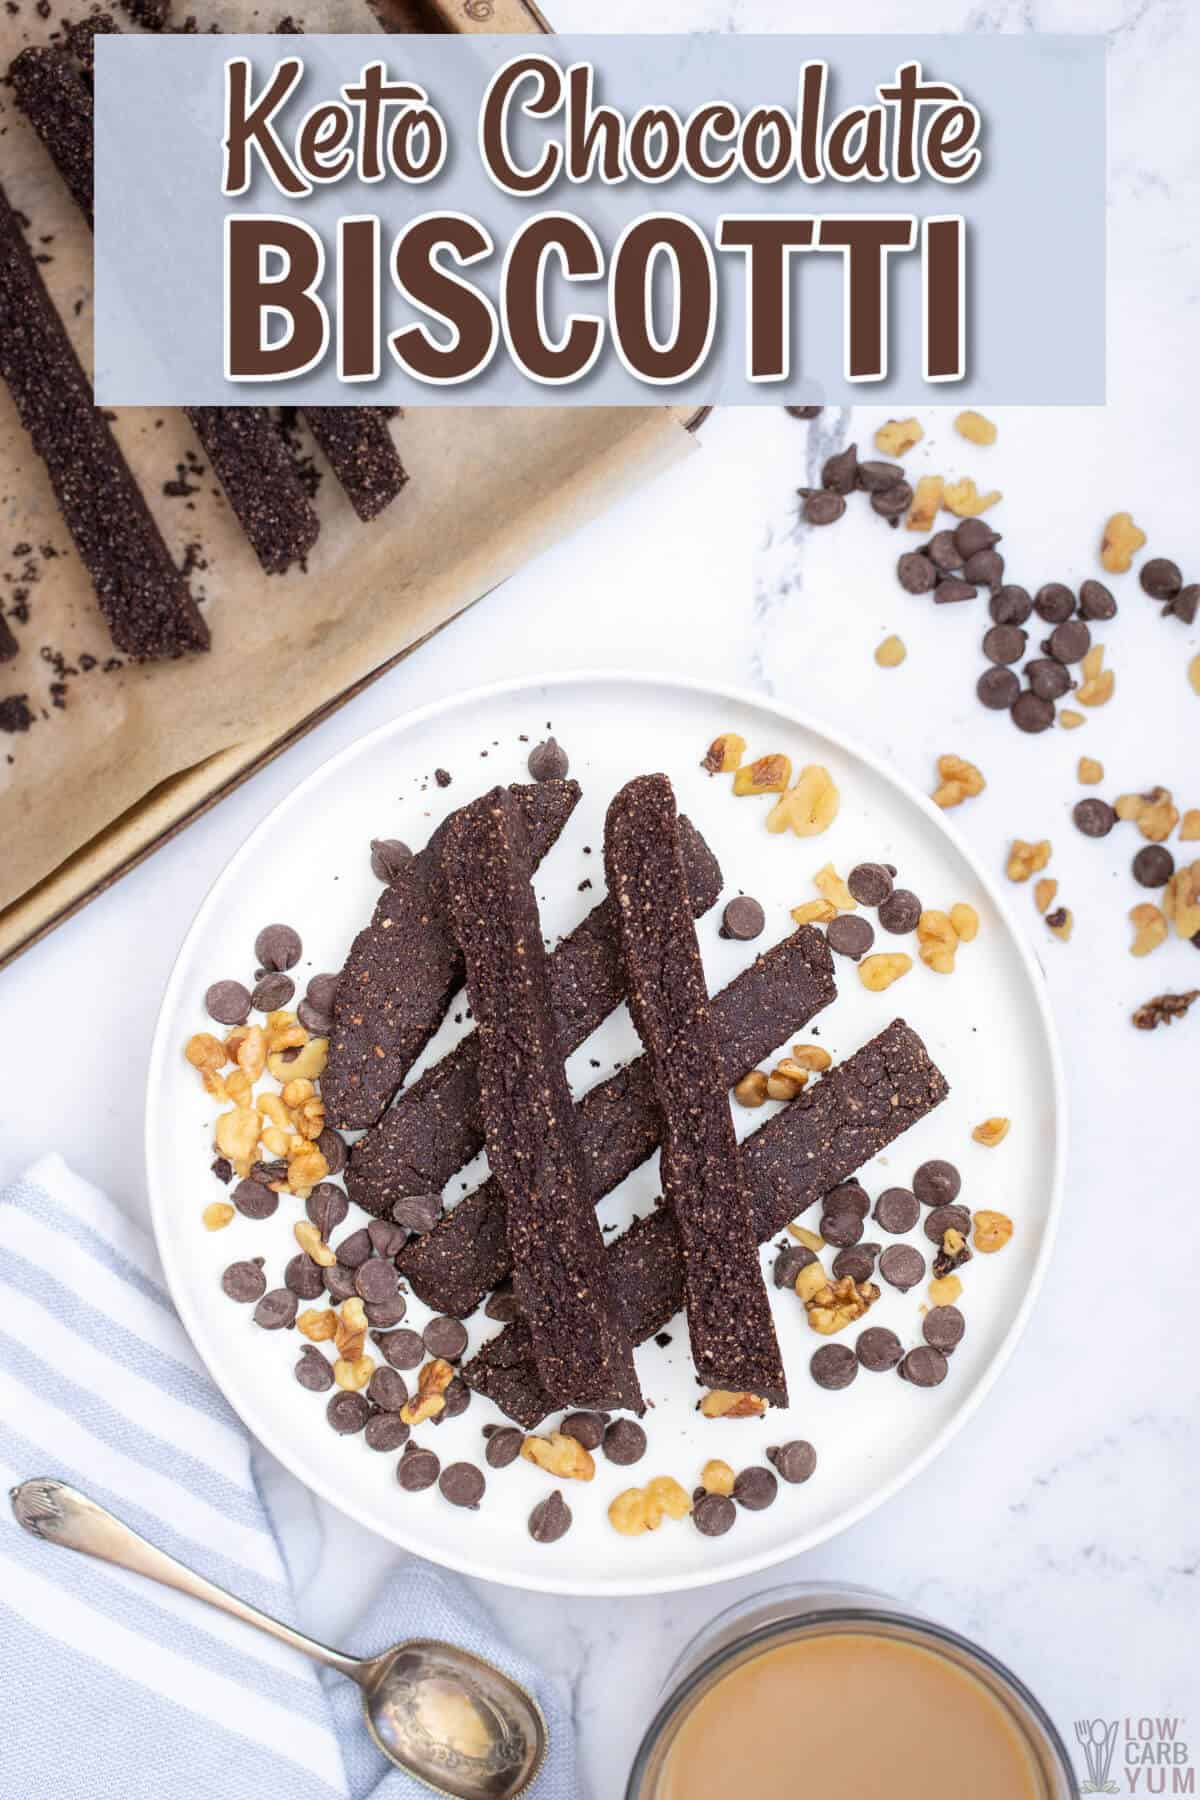 gluten-free chocolate keto biscotti with nuts and chips on white plate pinterest image